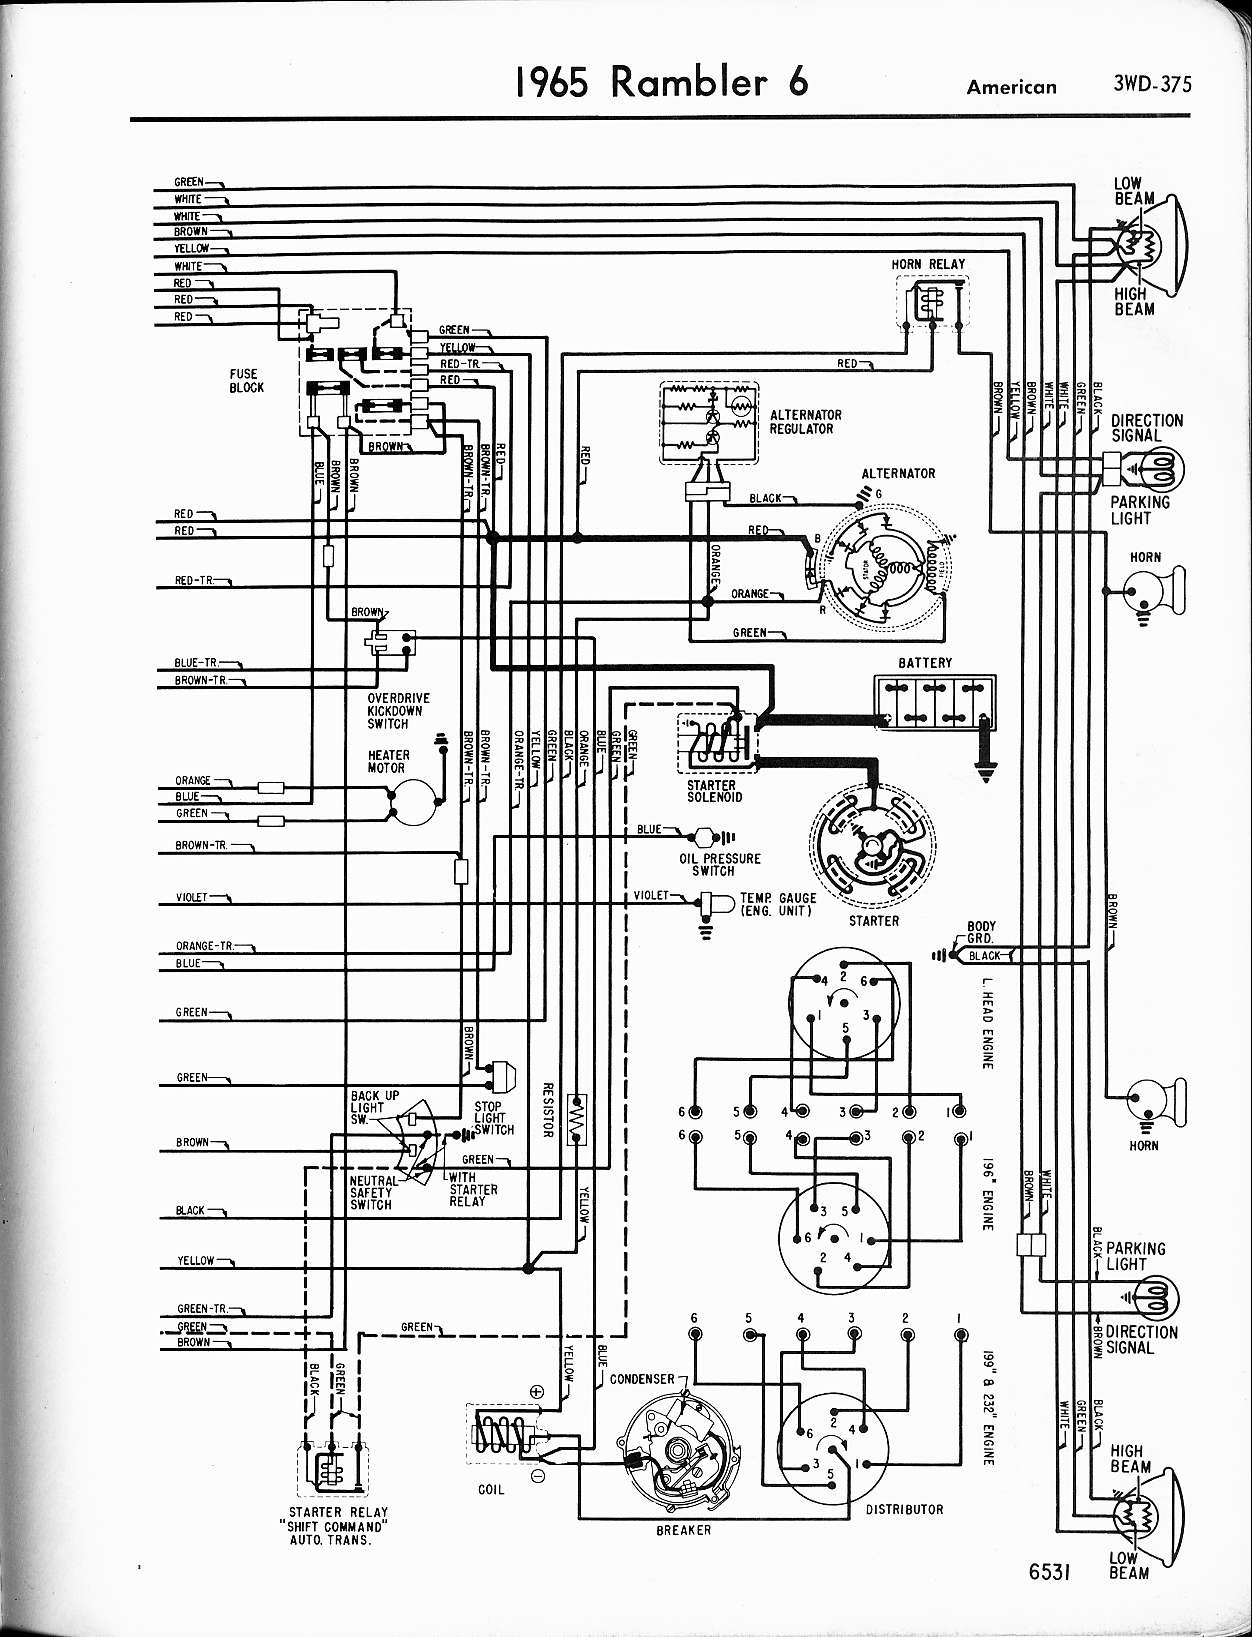 American Wiring Diagram Key - Trusted Wiring Diagram •